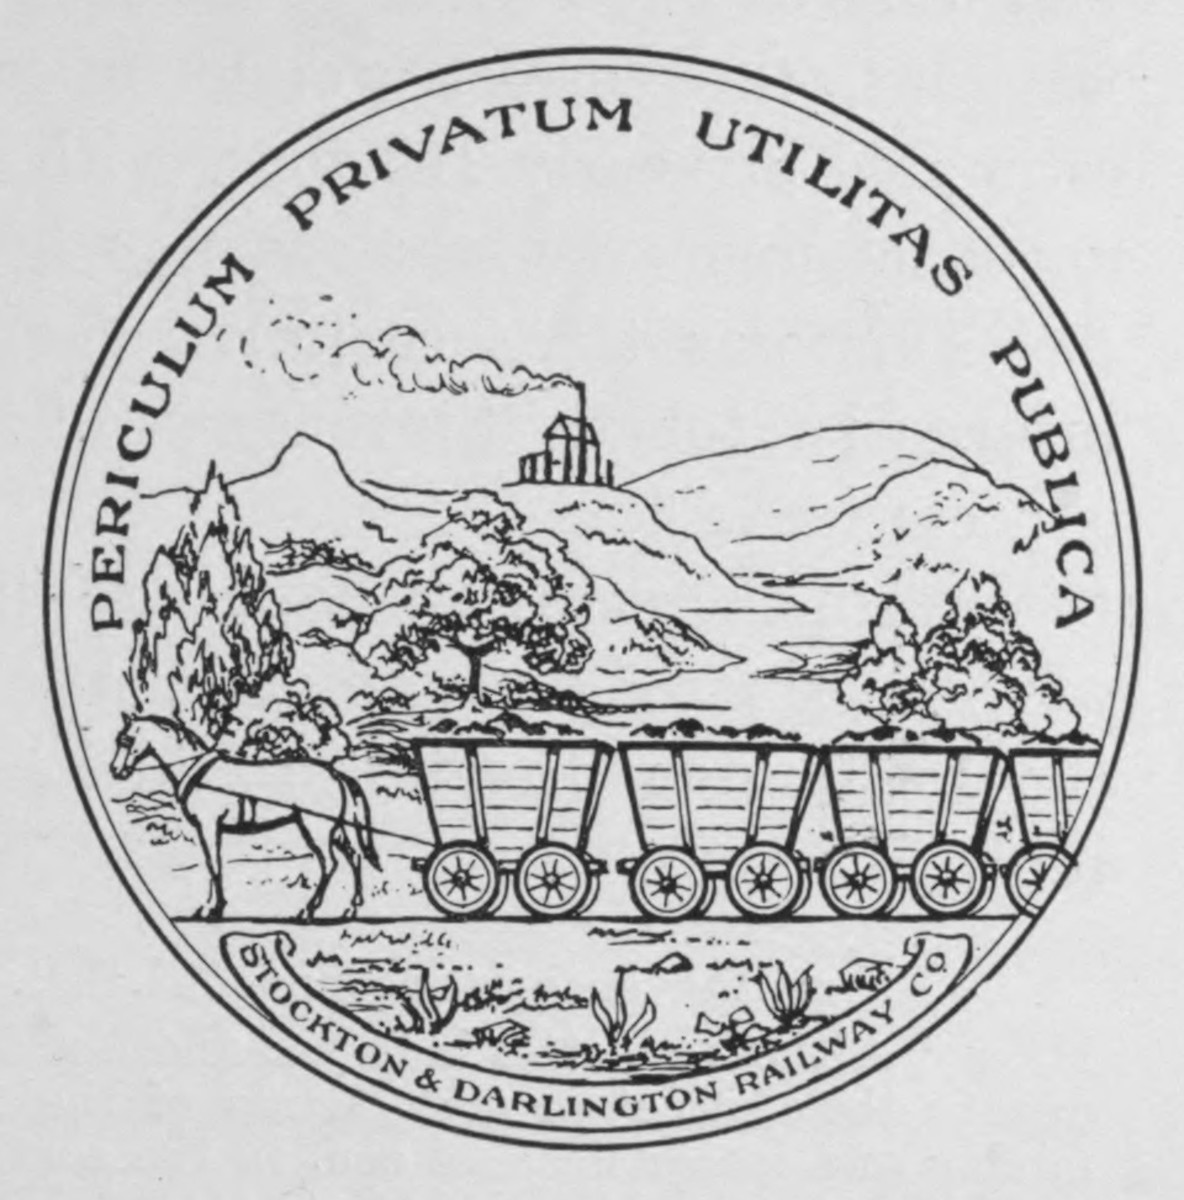 Seal of the Stockton & Darlington Railway (S&DR)